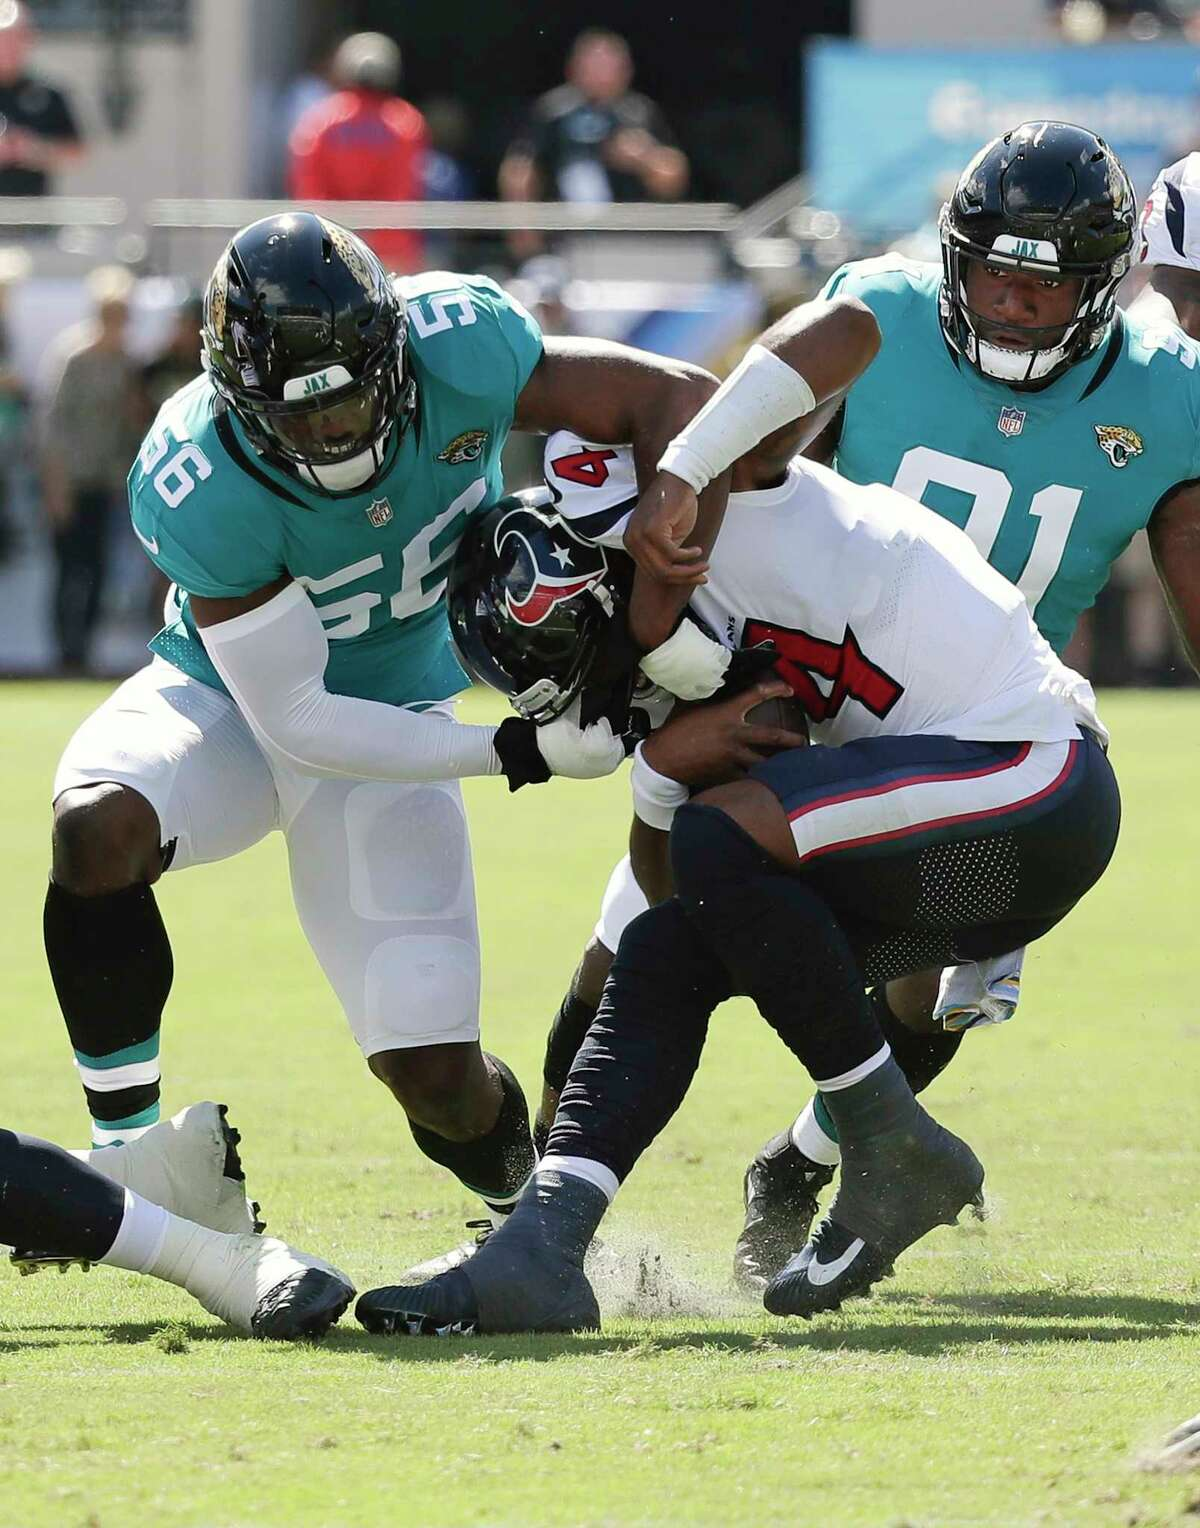 Jacksonville Jaguars defensive end Dante Fowler, left, and defensive end Yannick Ngakoue, right, sack Houston Texans quarterback Deshaun Watson, center, during the first half of an NFL football game, Sunday, Oct. 21, 2018, in Jacksonville, Fla. (AP Photo/John Raoux)